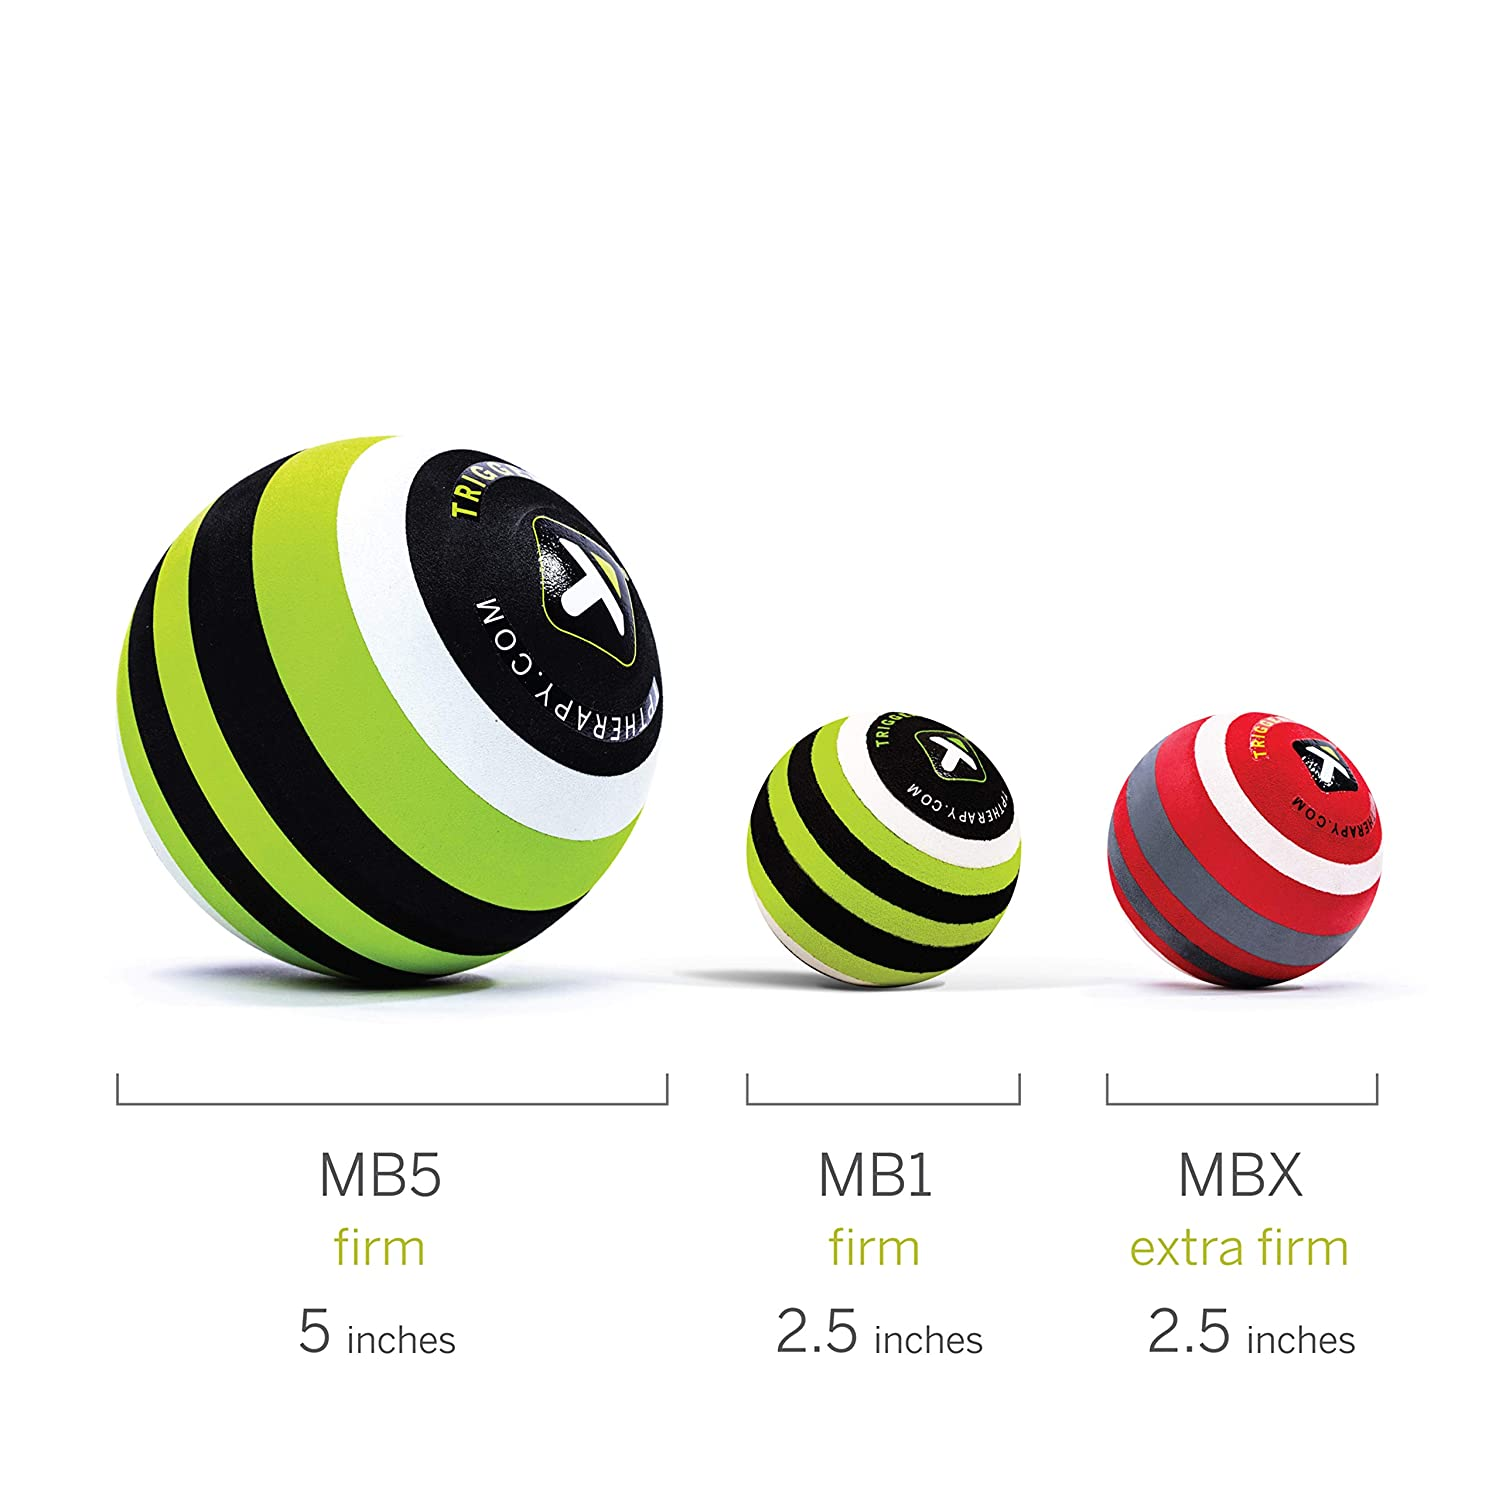 Comparison chart showing the different TriggerPoint Massage Balls